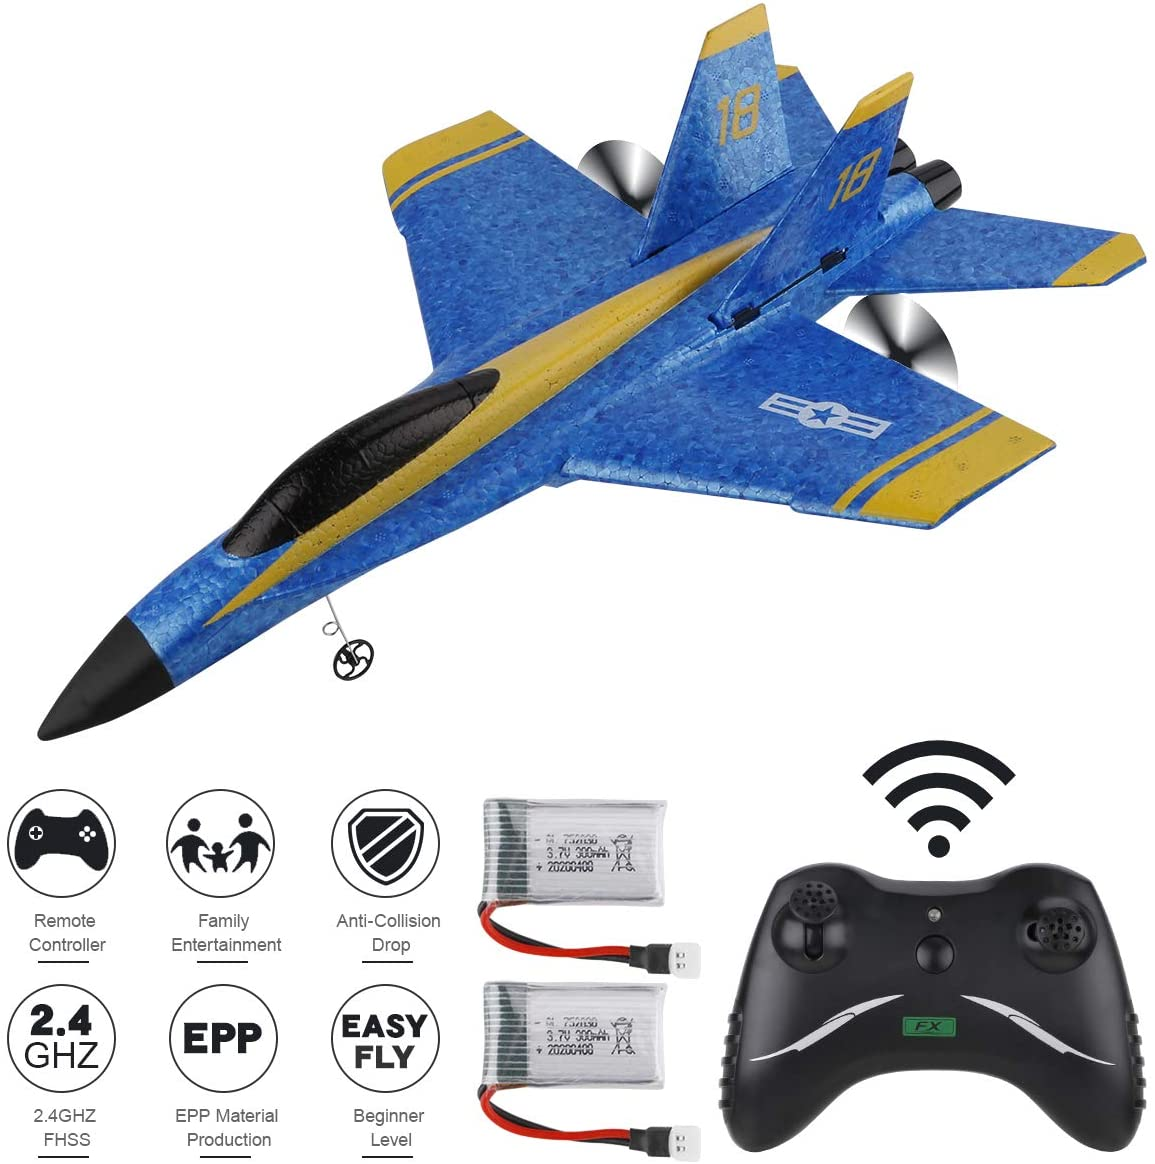 Makerfire RC Plane F-18 Remote Control Airplane 2.4GHz 3.5 Channel 6-Axis Gyro RTF Plane Ready to Fly for Kids Boys Beginner